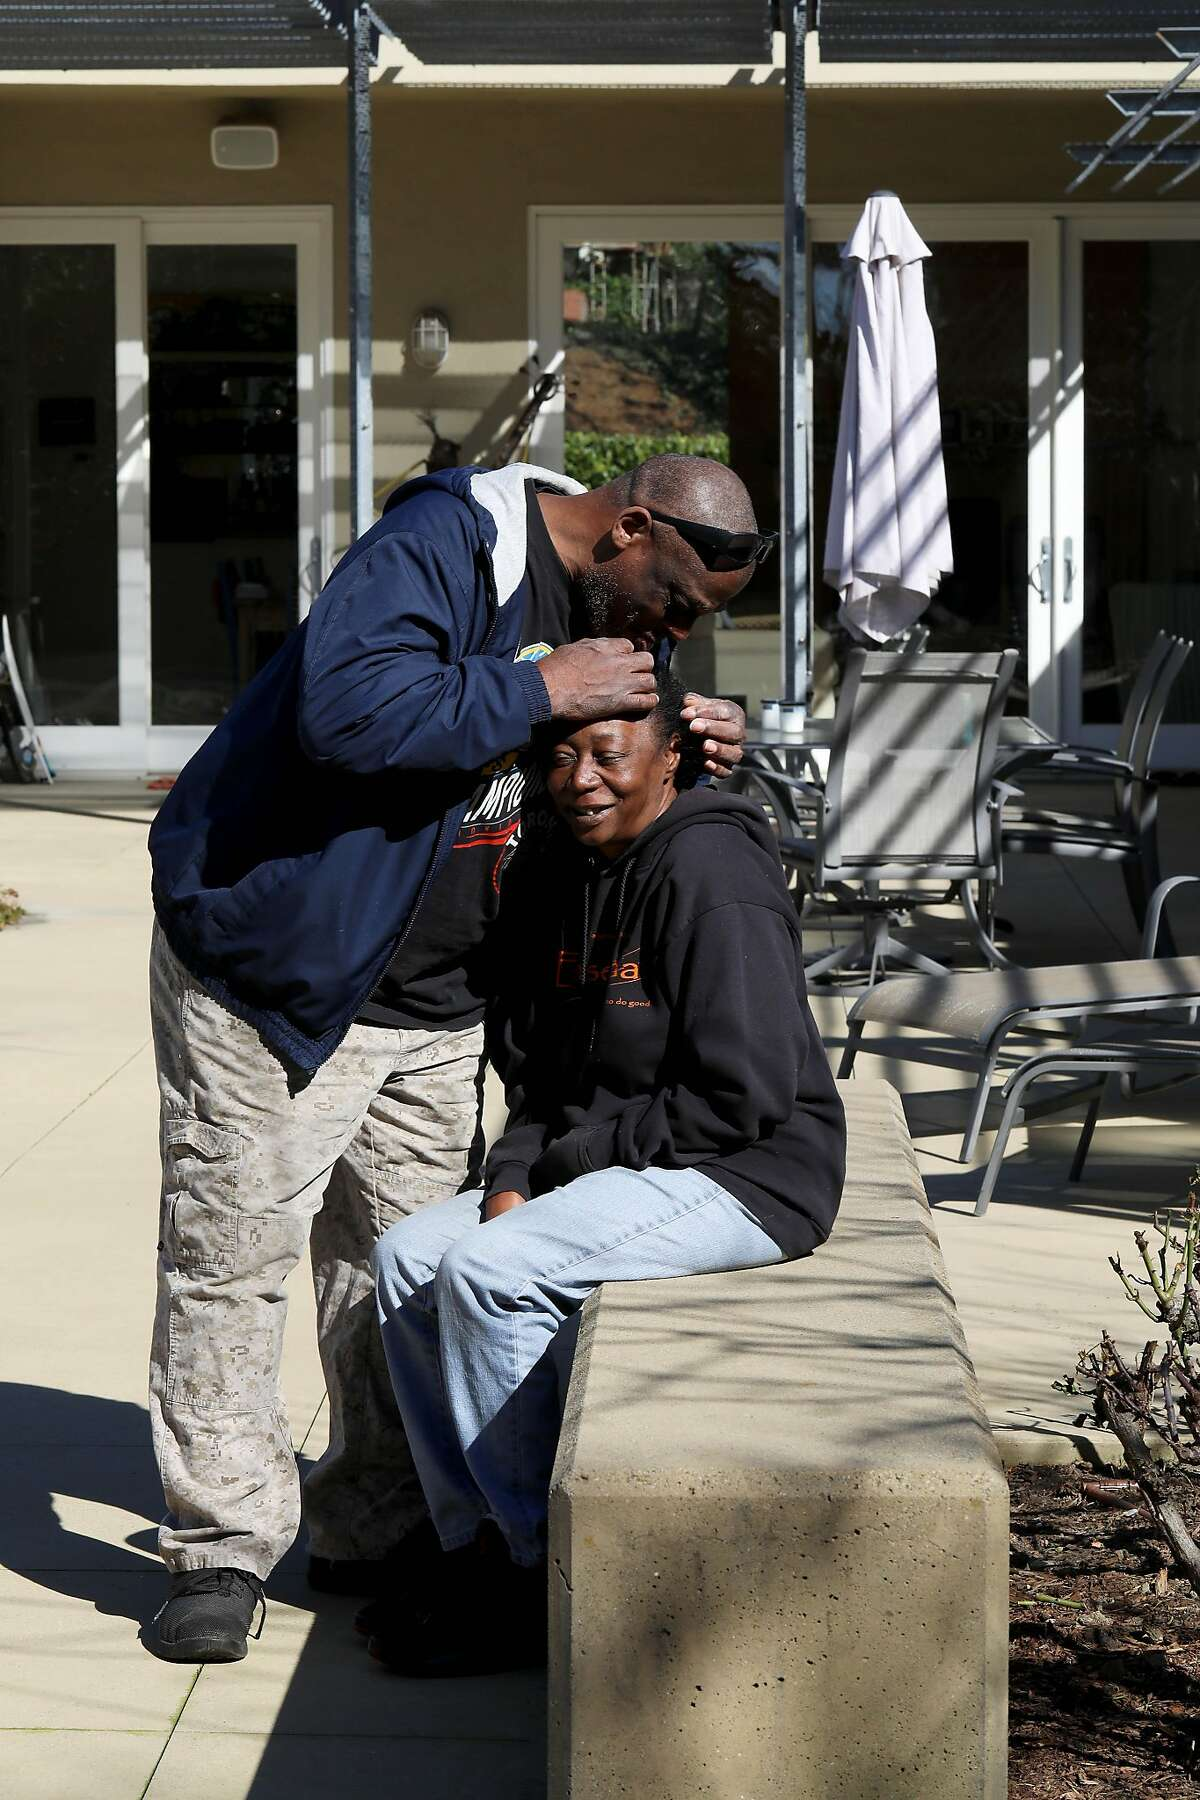 """Greg Dunston touches Marie Mckinzie's head as he searches for her grey hairs as they soak up some rays in the backyard of Terry McGrath's home in Piedmont, Calif., on Wednesday, February 5, 2020. The once homeless couple lived on the streets of Oakland a year ago before McGrath invited them to live in his in-law unit. """"The only thing that's changed is our clothes and today, we're still the same,"""" Dunston said with a smile."""